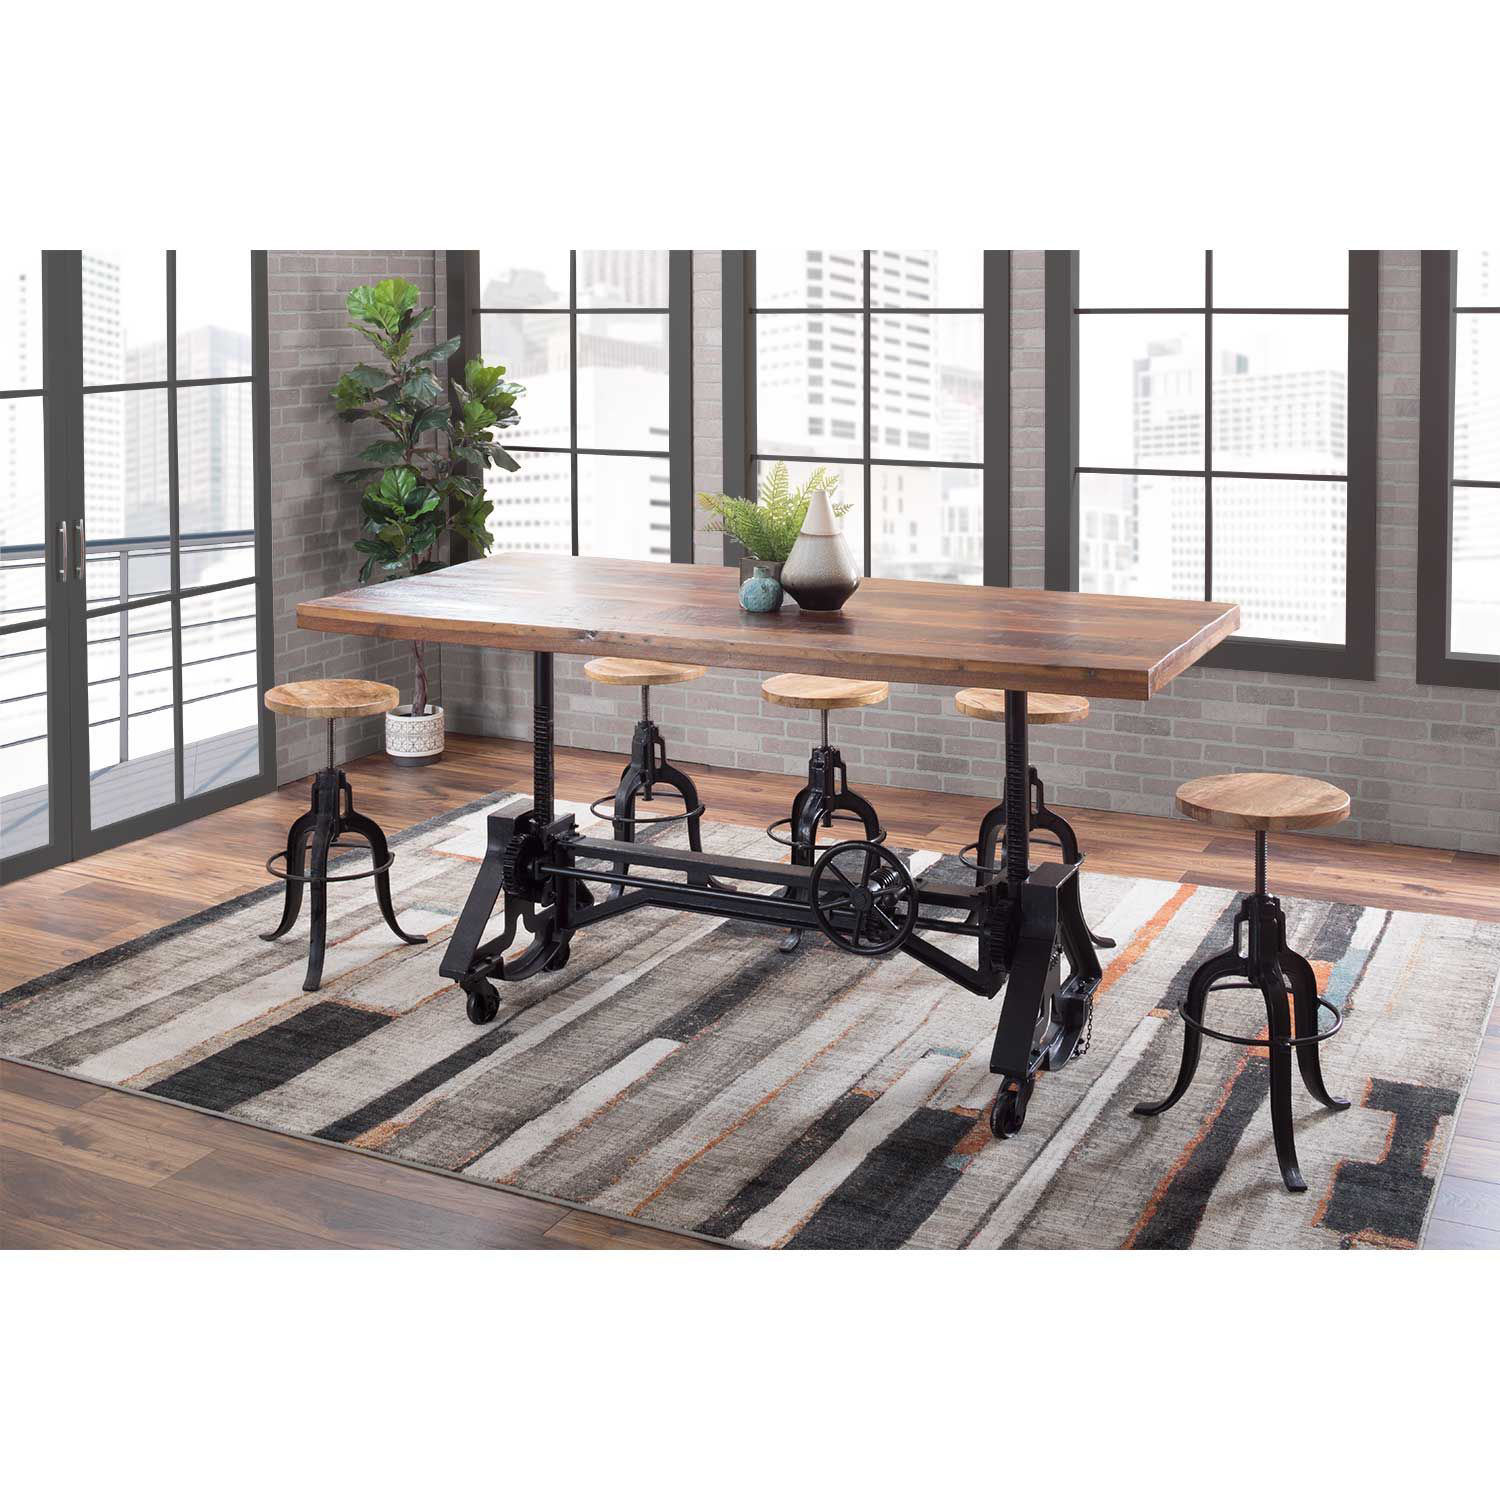 Picture of Industrial Crank Table with Reclaimed Wood Top